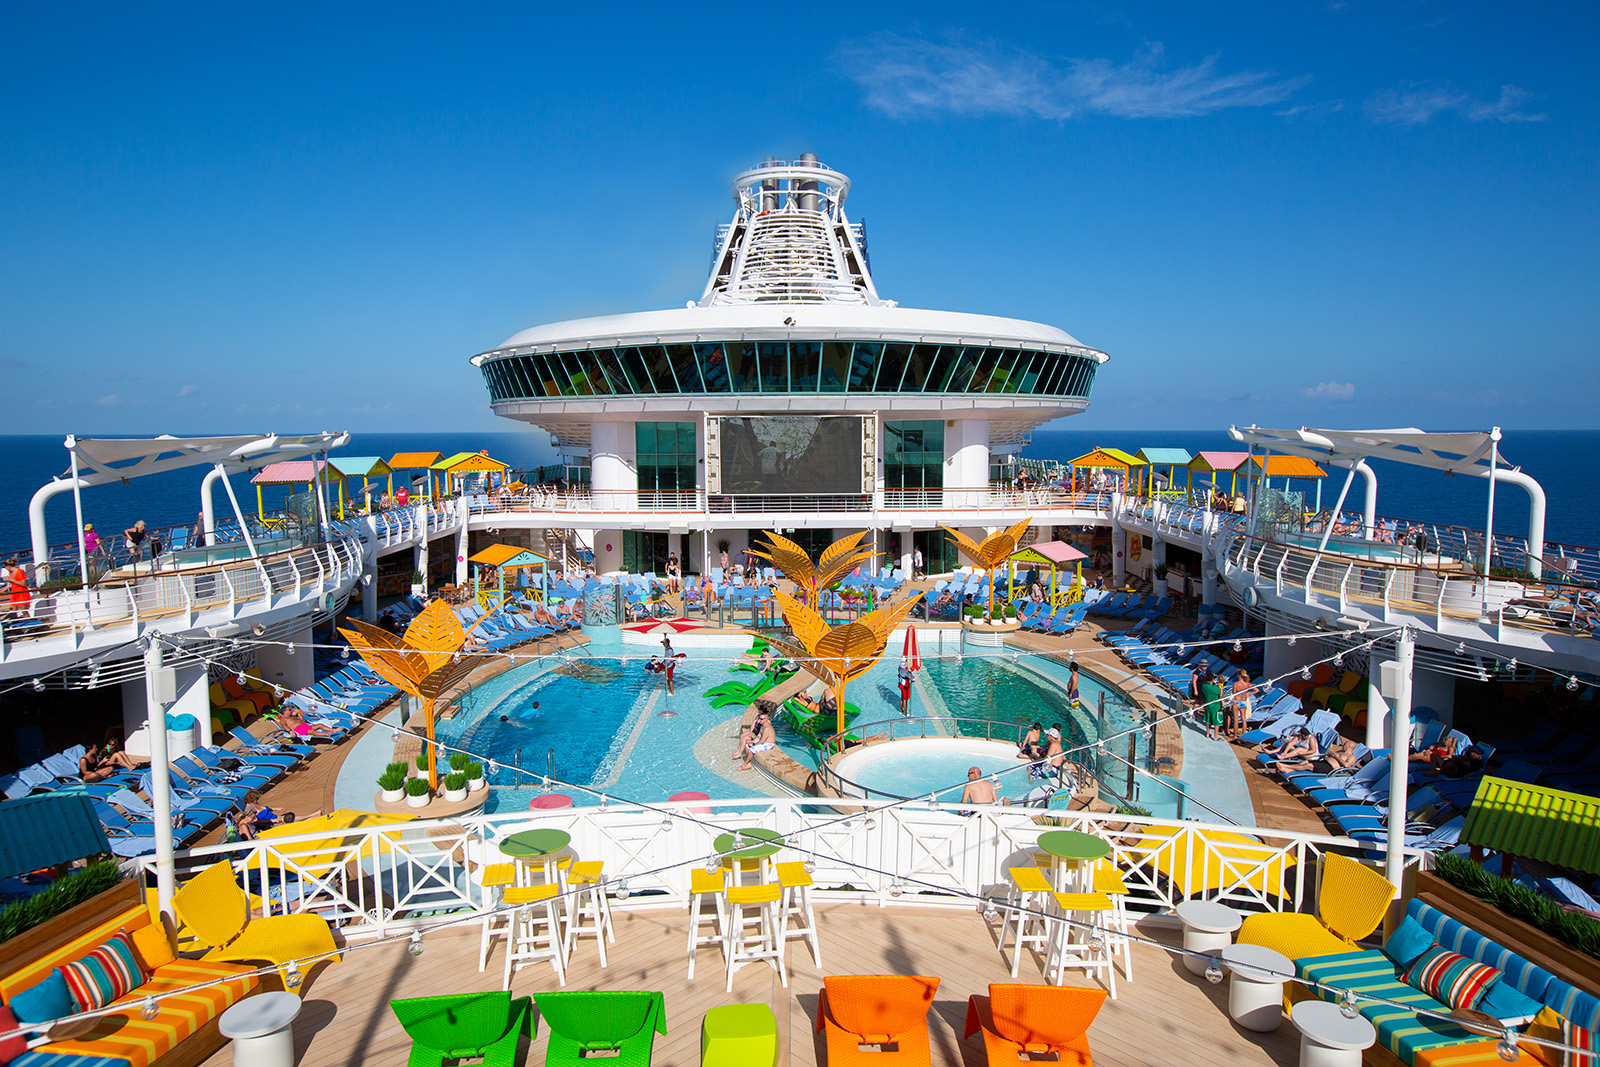 Fun for the whole family aboard the Navigator of the Seas